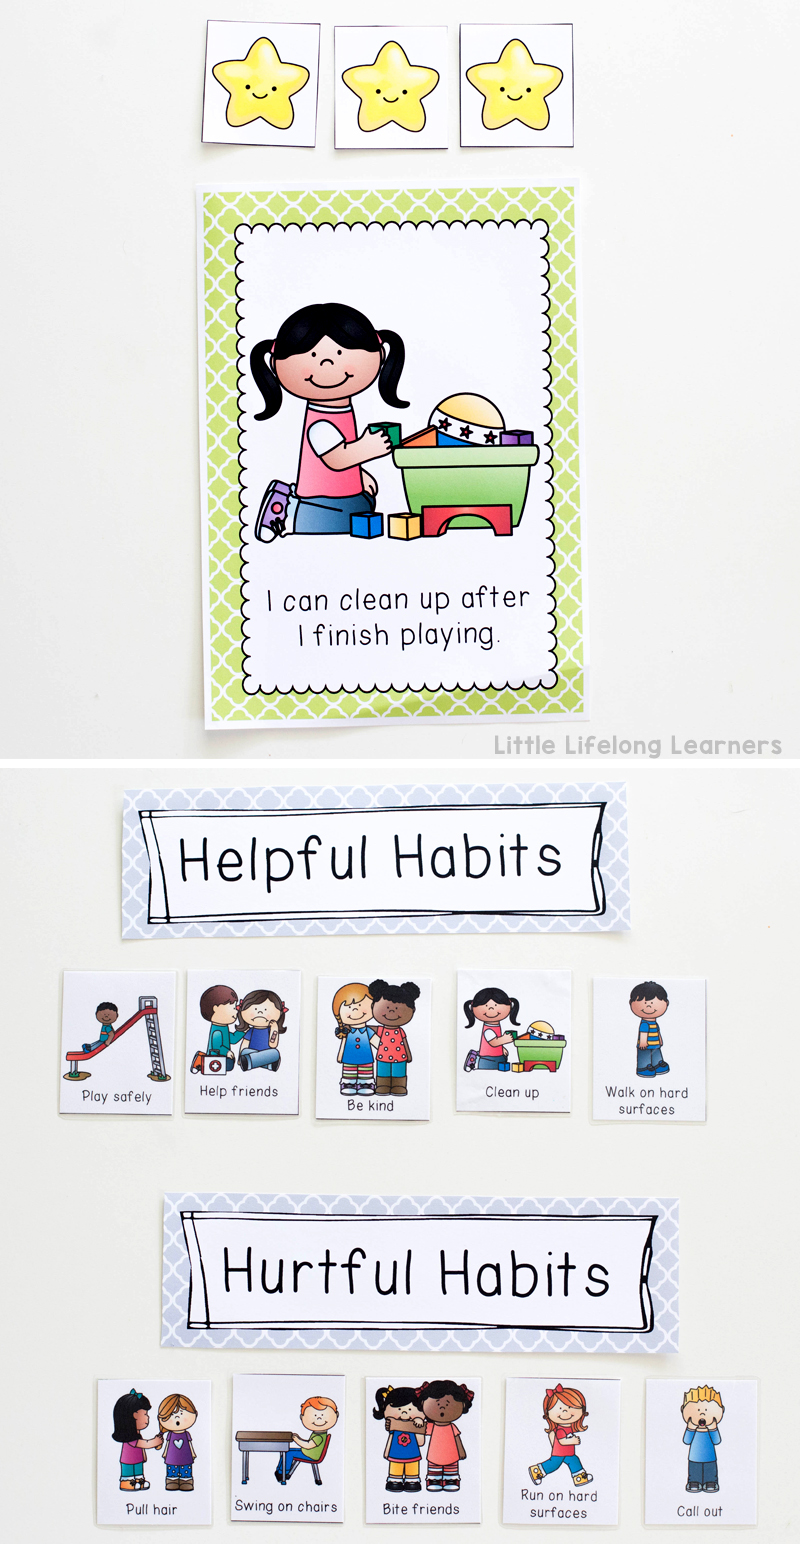 Behaviour management using goal setting and picture sorts | Social stories for setting behaviour expectations and classroom rules | Australian Prep, Foundation, Kindergarten and Preschool teaching printables |